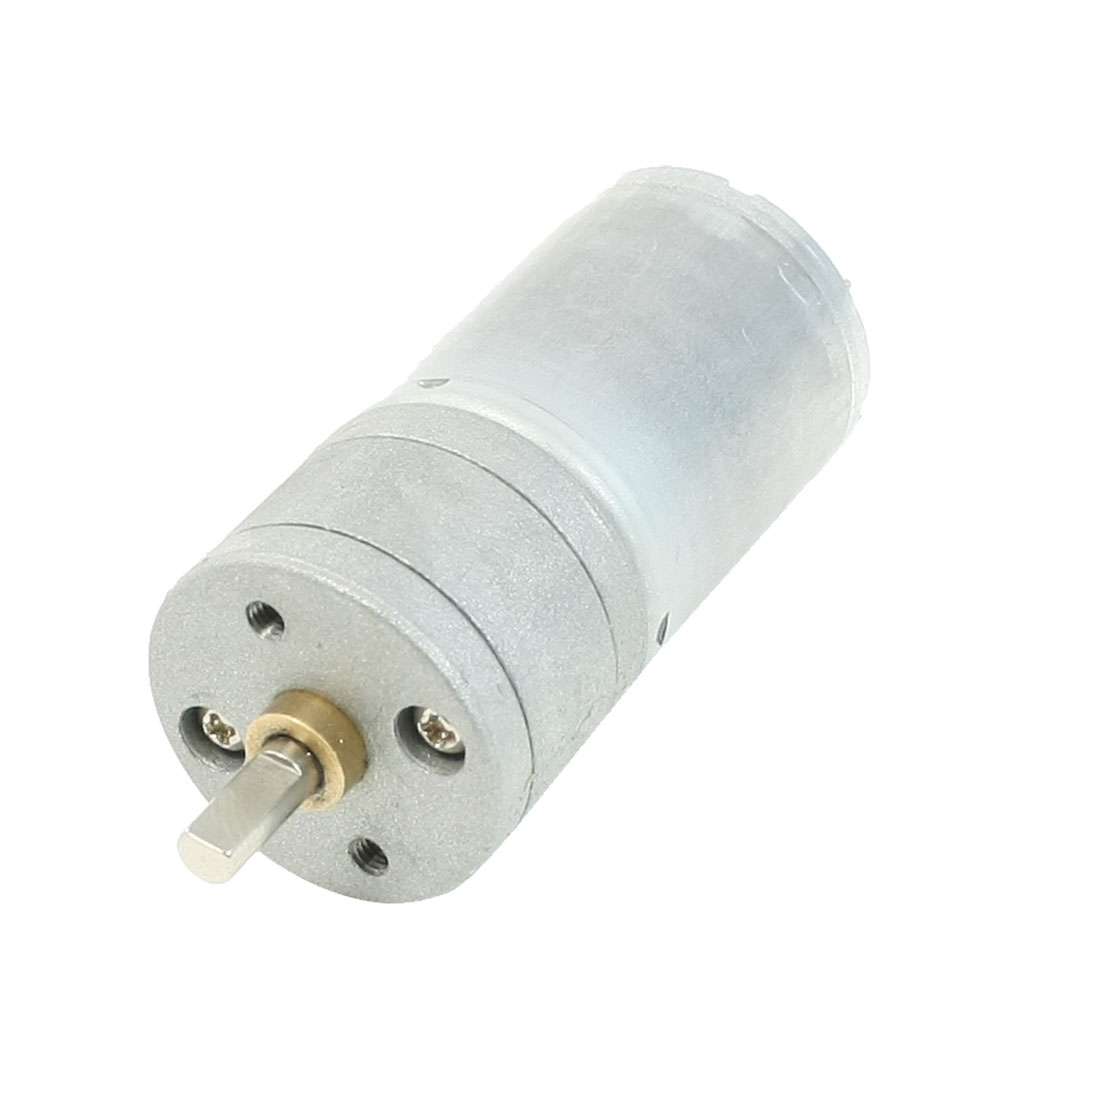 DC 12V 1000RPM 2 Terminals Permanent Magnet Geared Reduction Motor